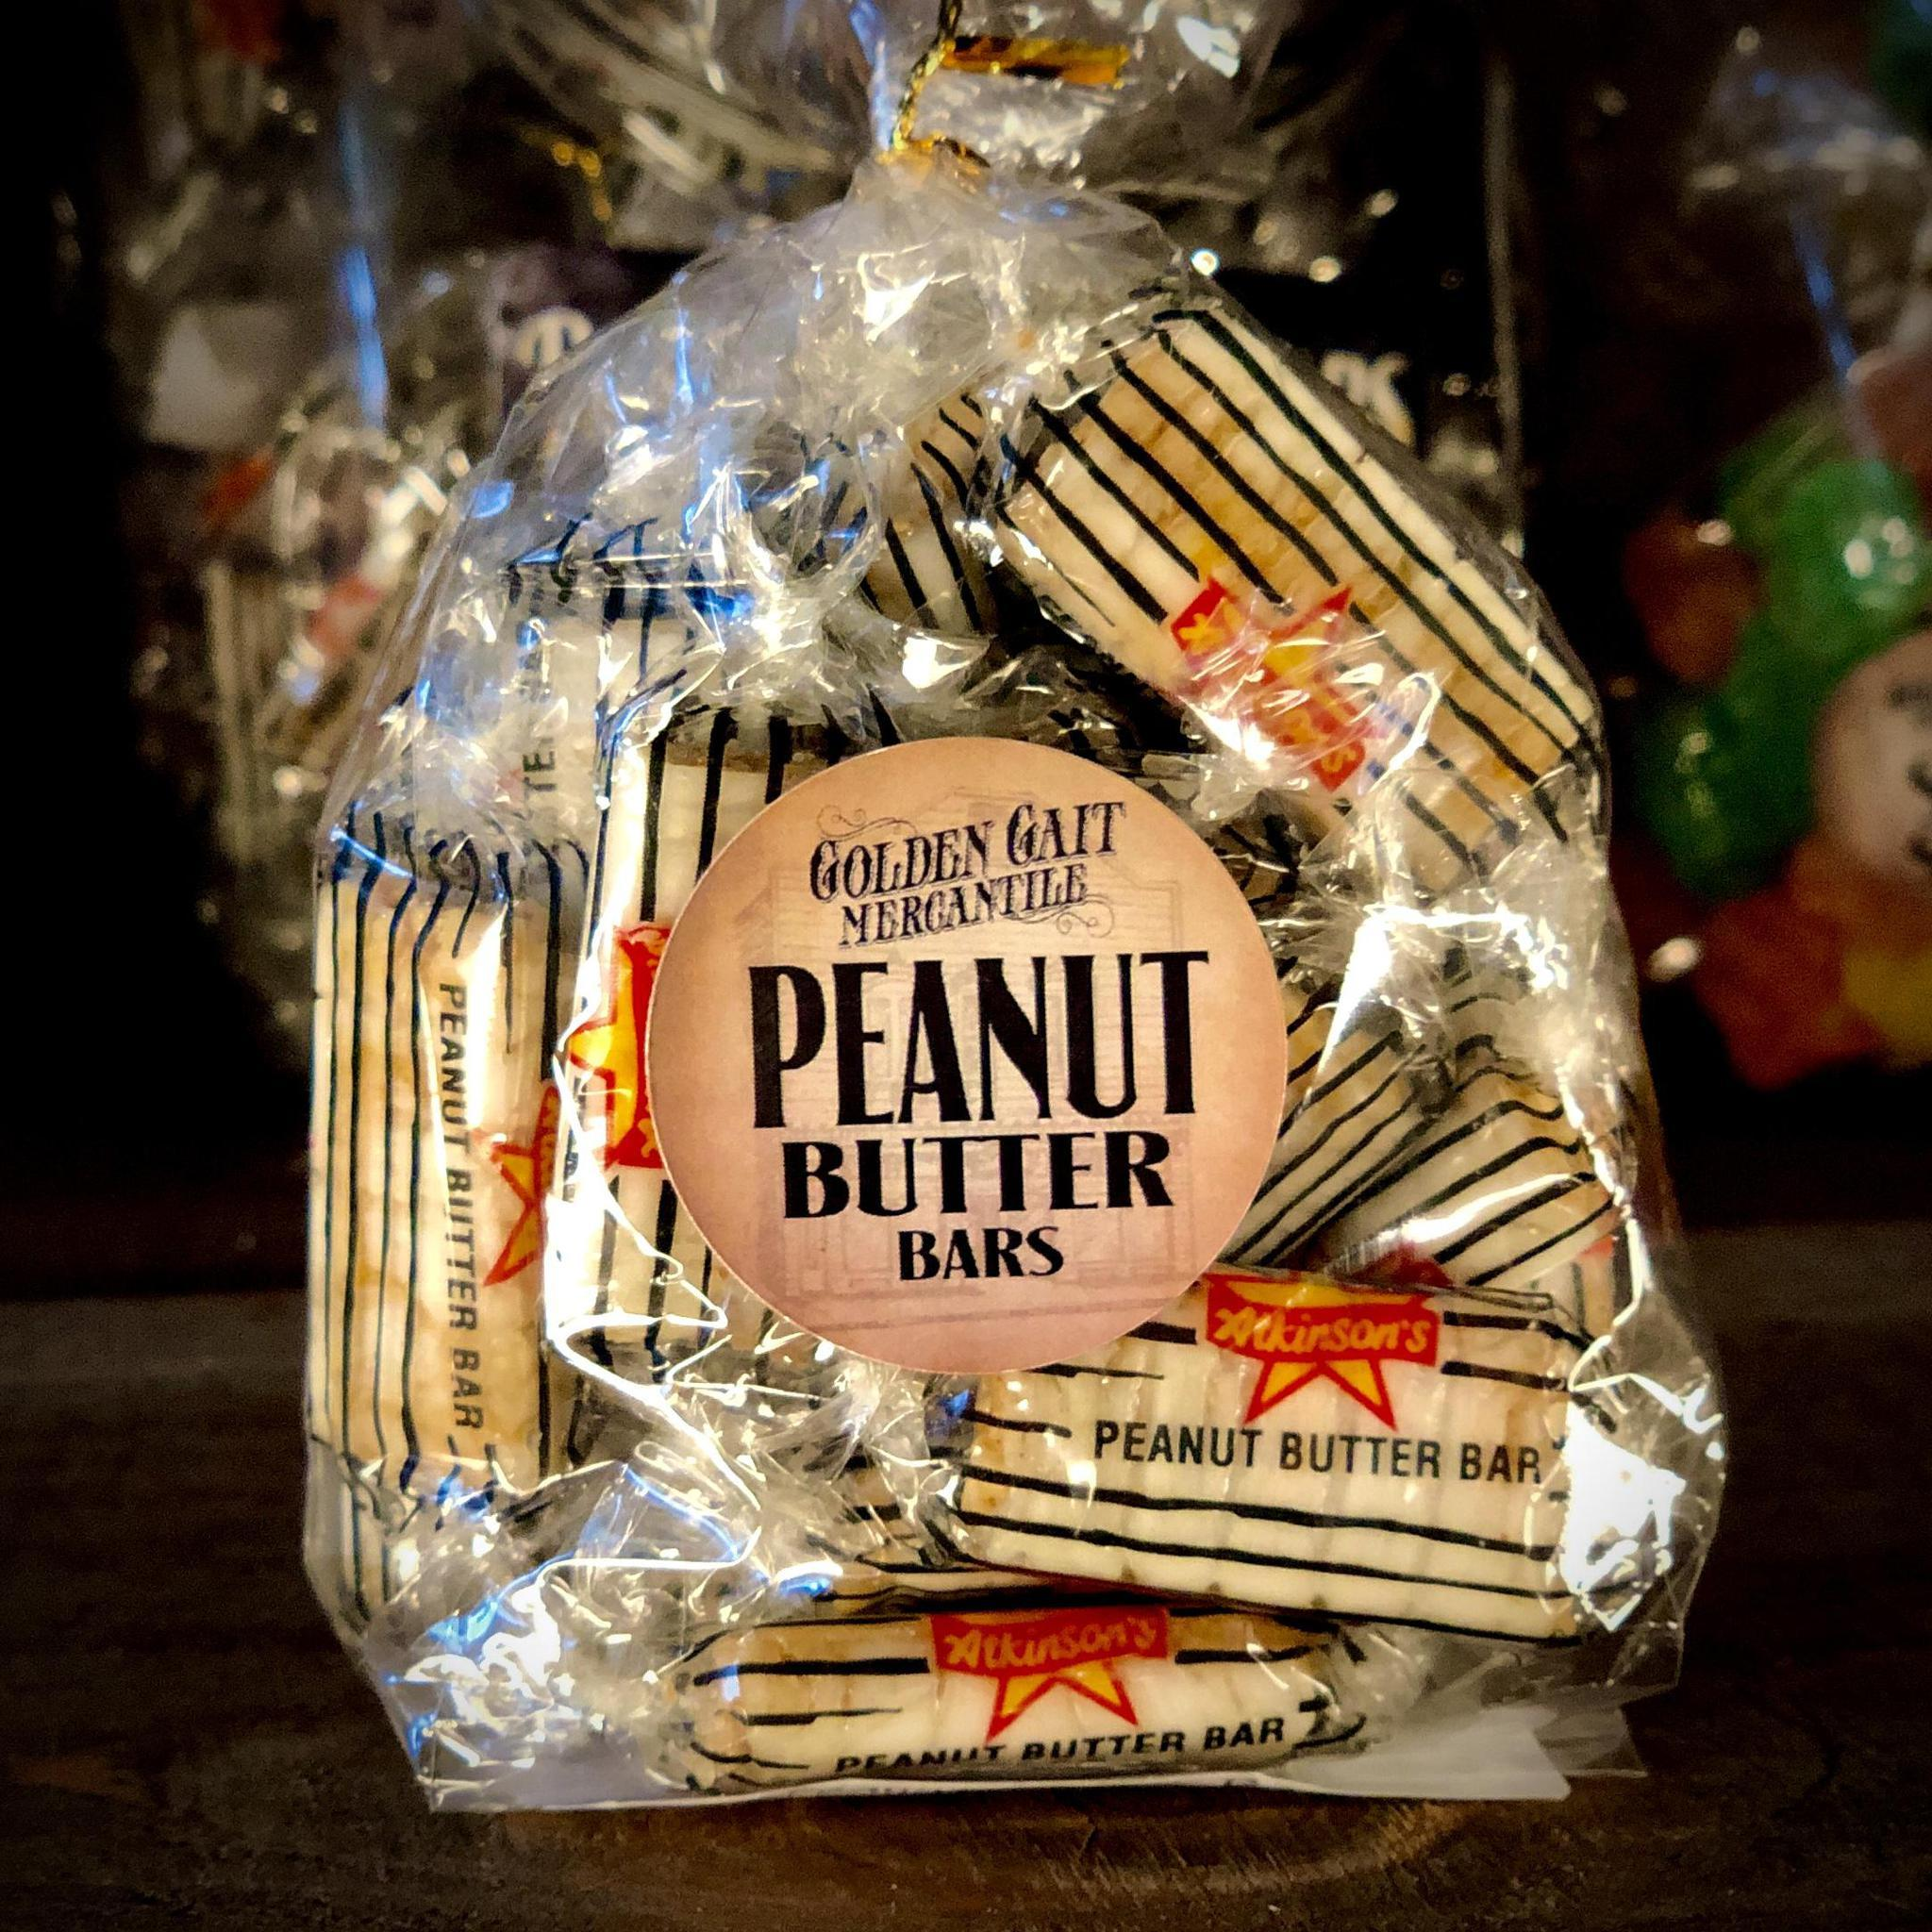 Old Fashioned Peanut Butter Bars By The Golden Gait Mercantile